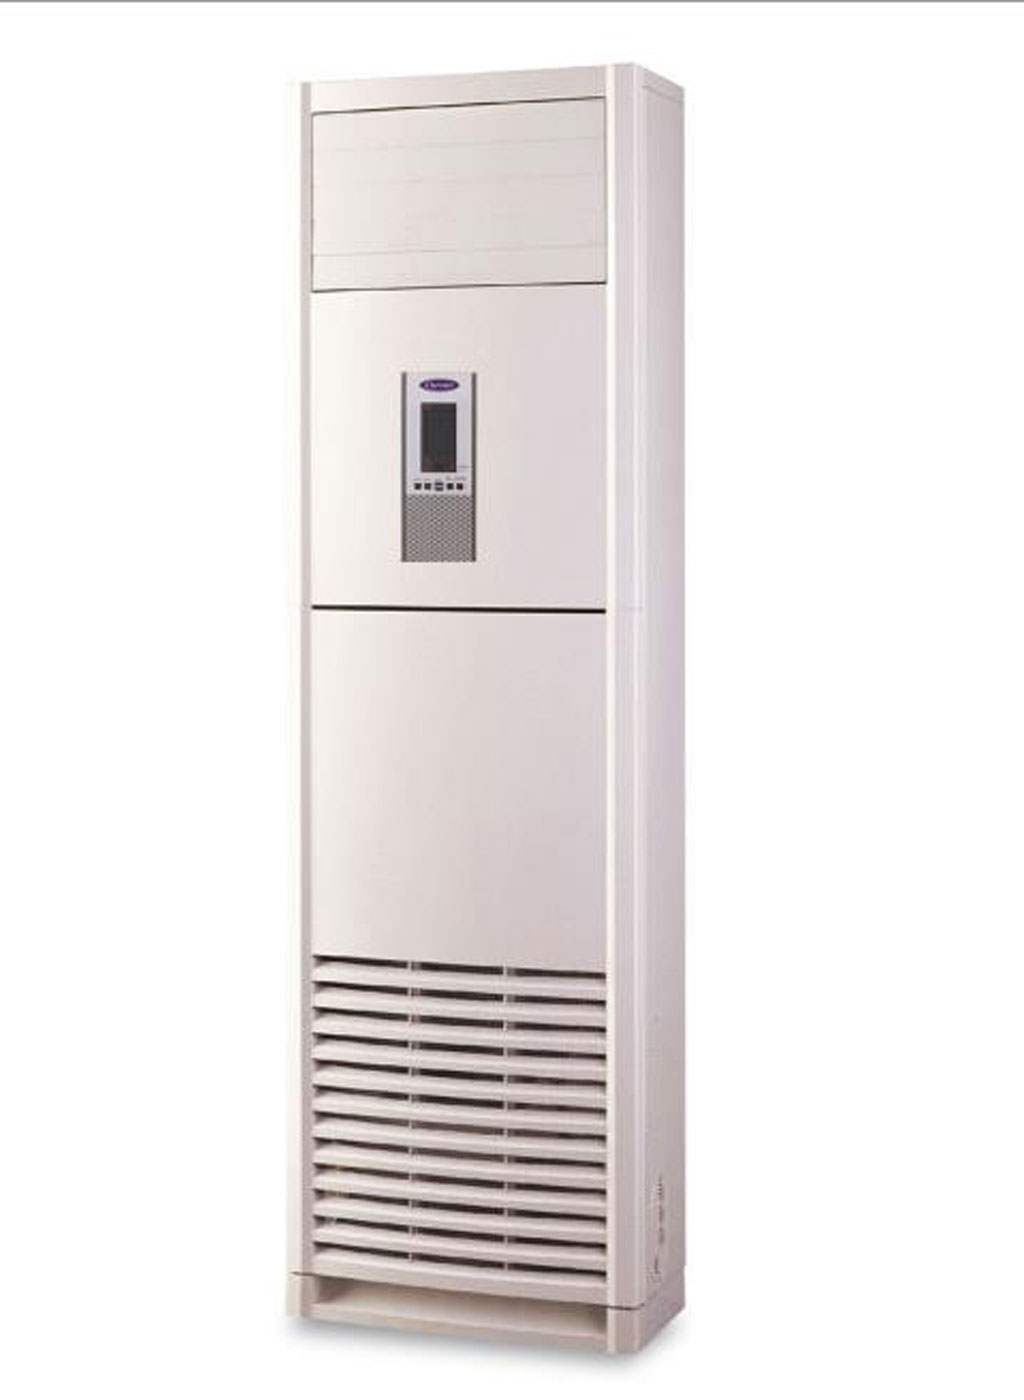 Alarko Carrier QFM 024 Salon Tipi Inverter Klima 26.200 BTU